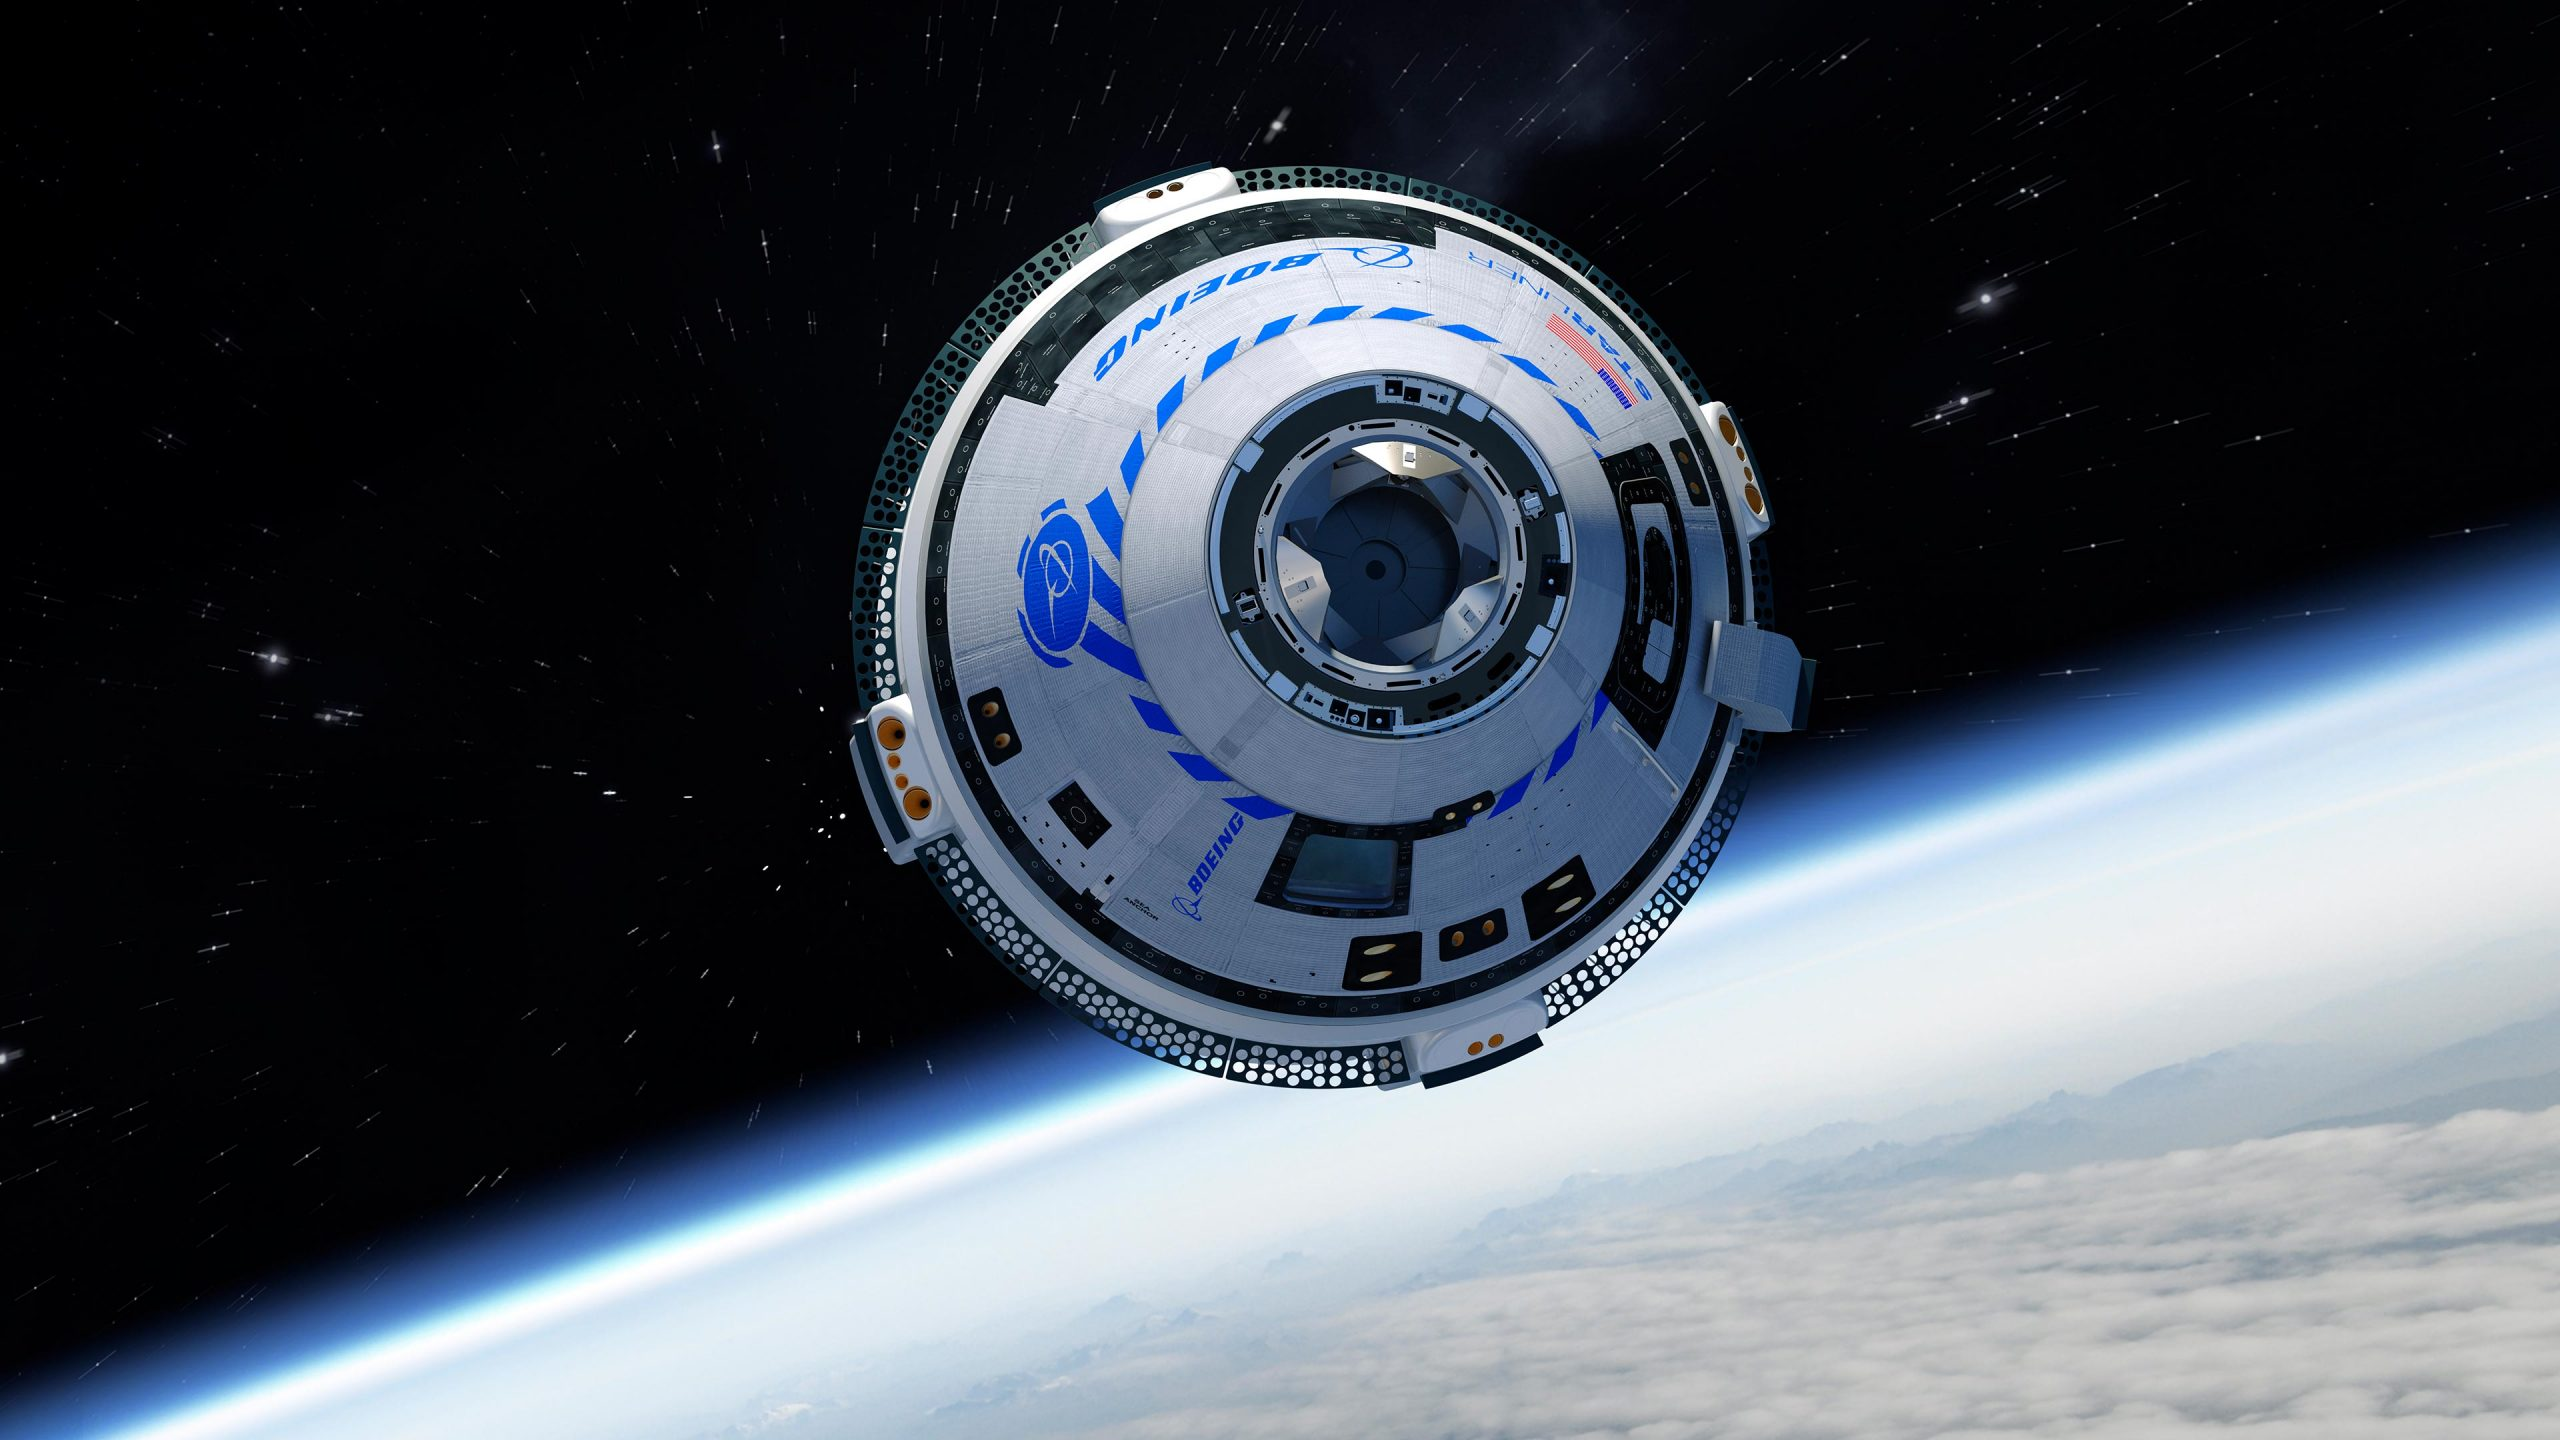 What You Need To Know About NASA's Boeing Starliner Spacecraft Launch + How To Watch It Live